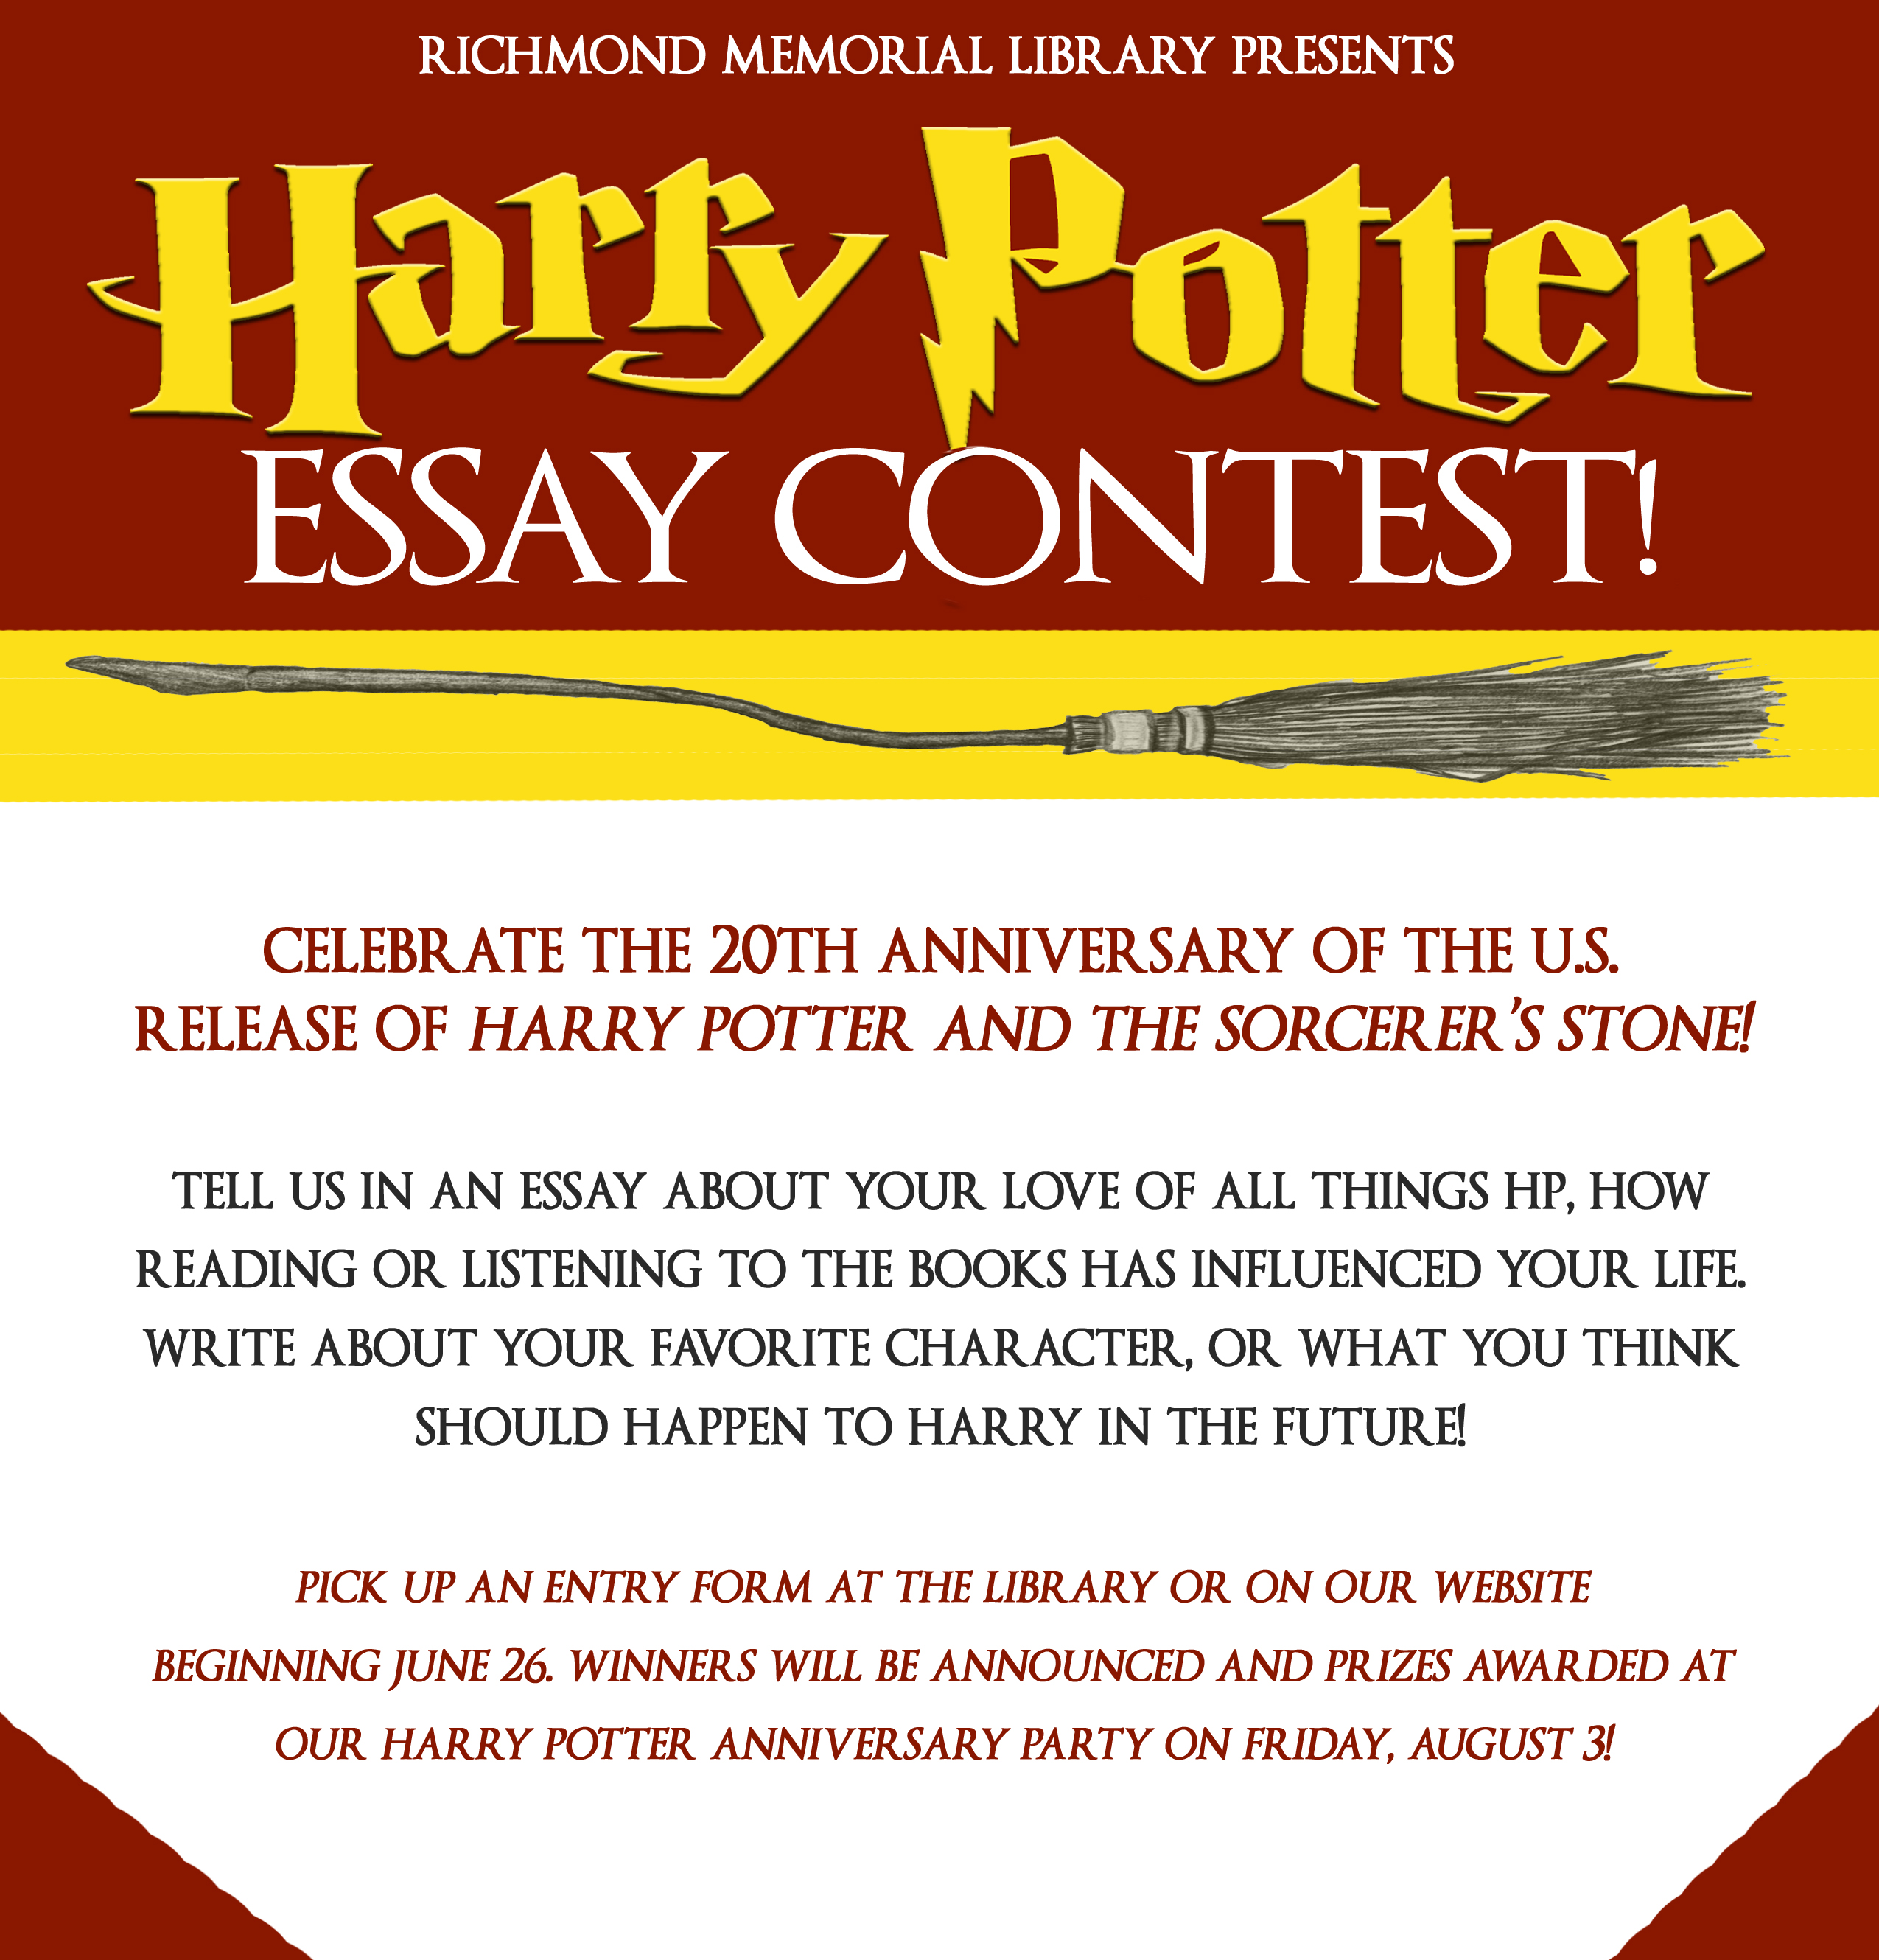 Harry Potter Essay Contest  Richmond Memorial Library Click Here To Download Entry Form Best Writing Service Websites also Sample Essay With Thesis Statement  Example Of Thesis Statement For Argumentative Essay